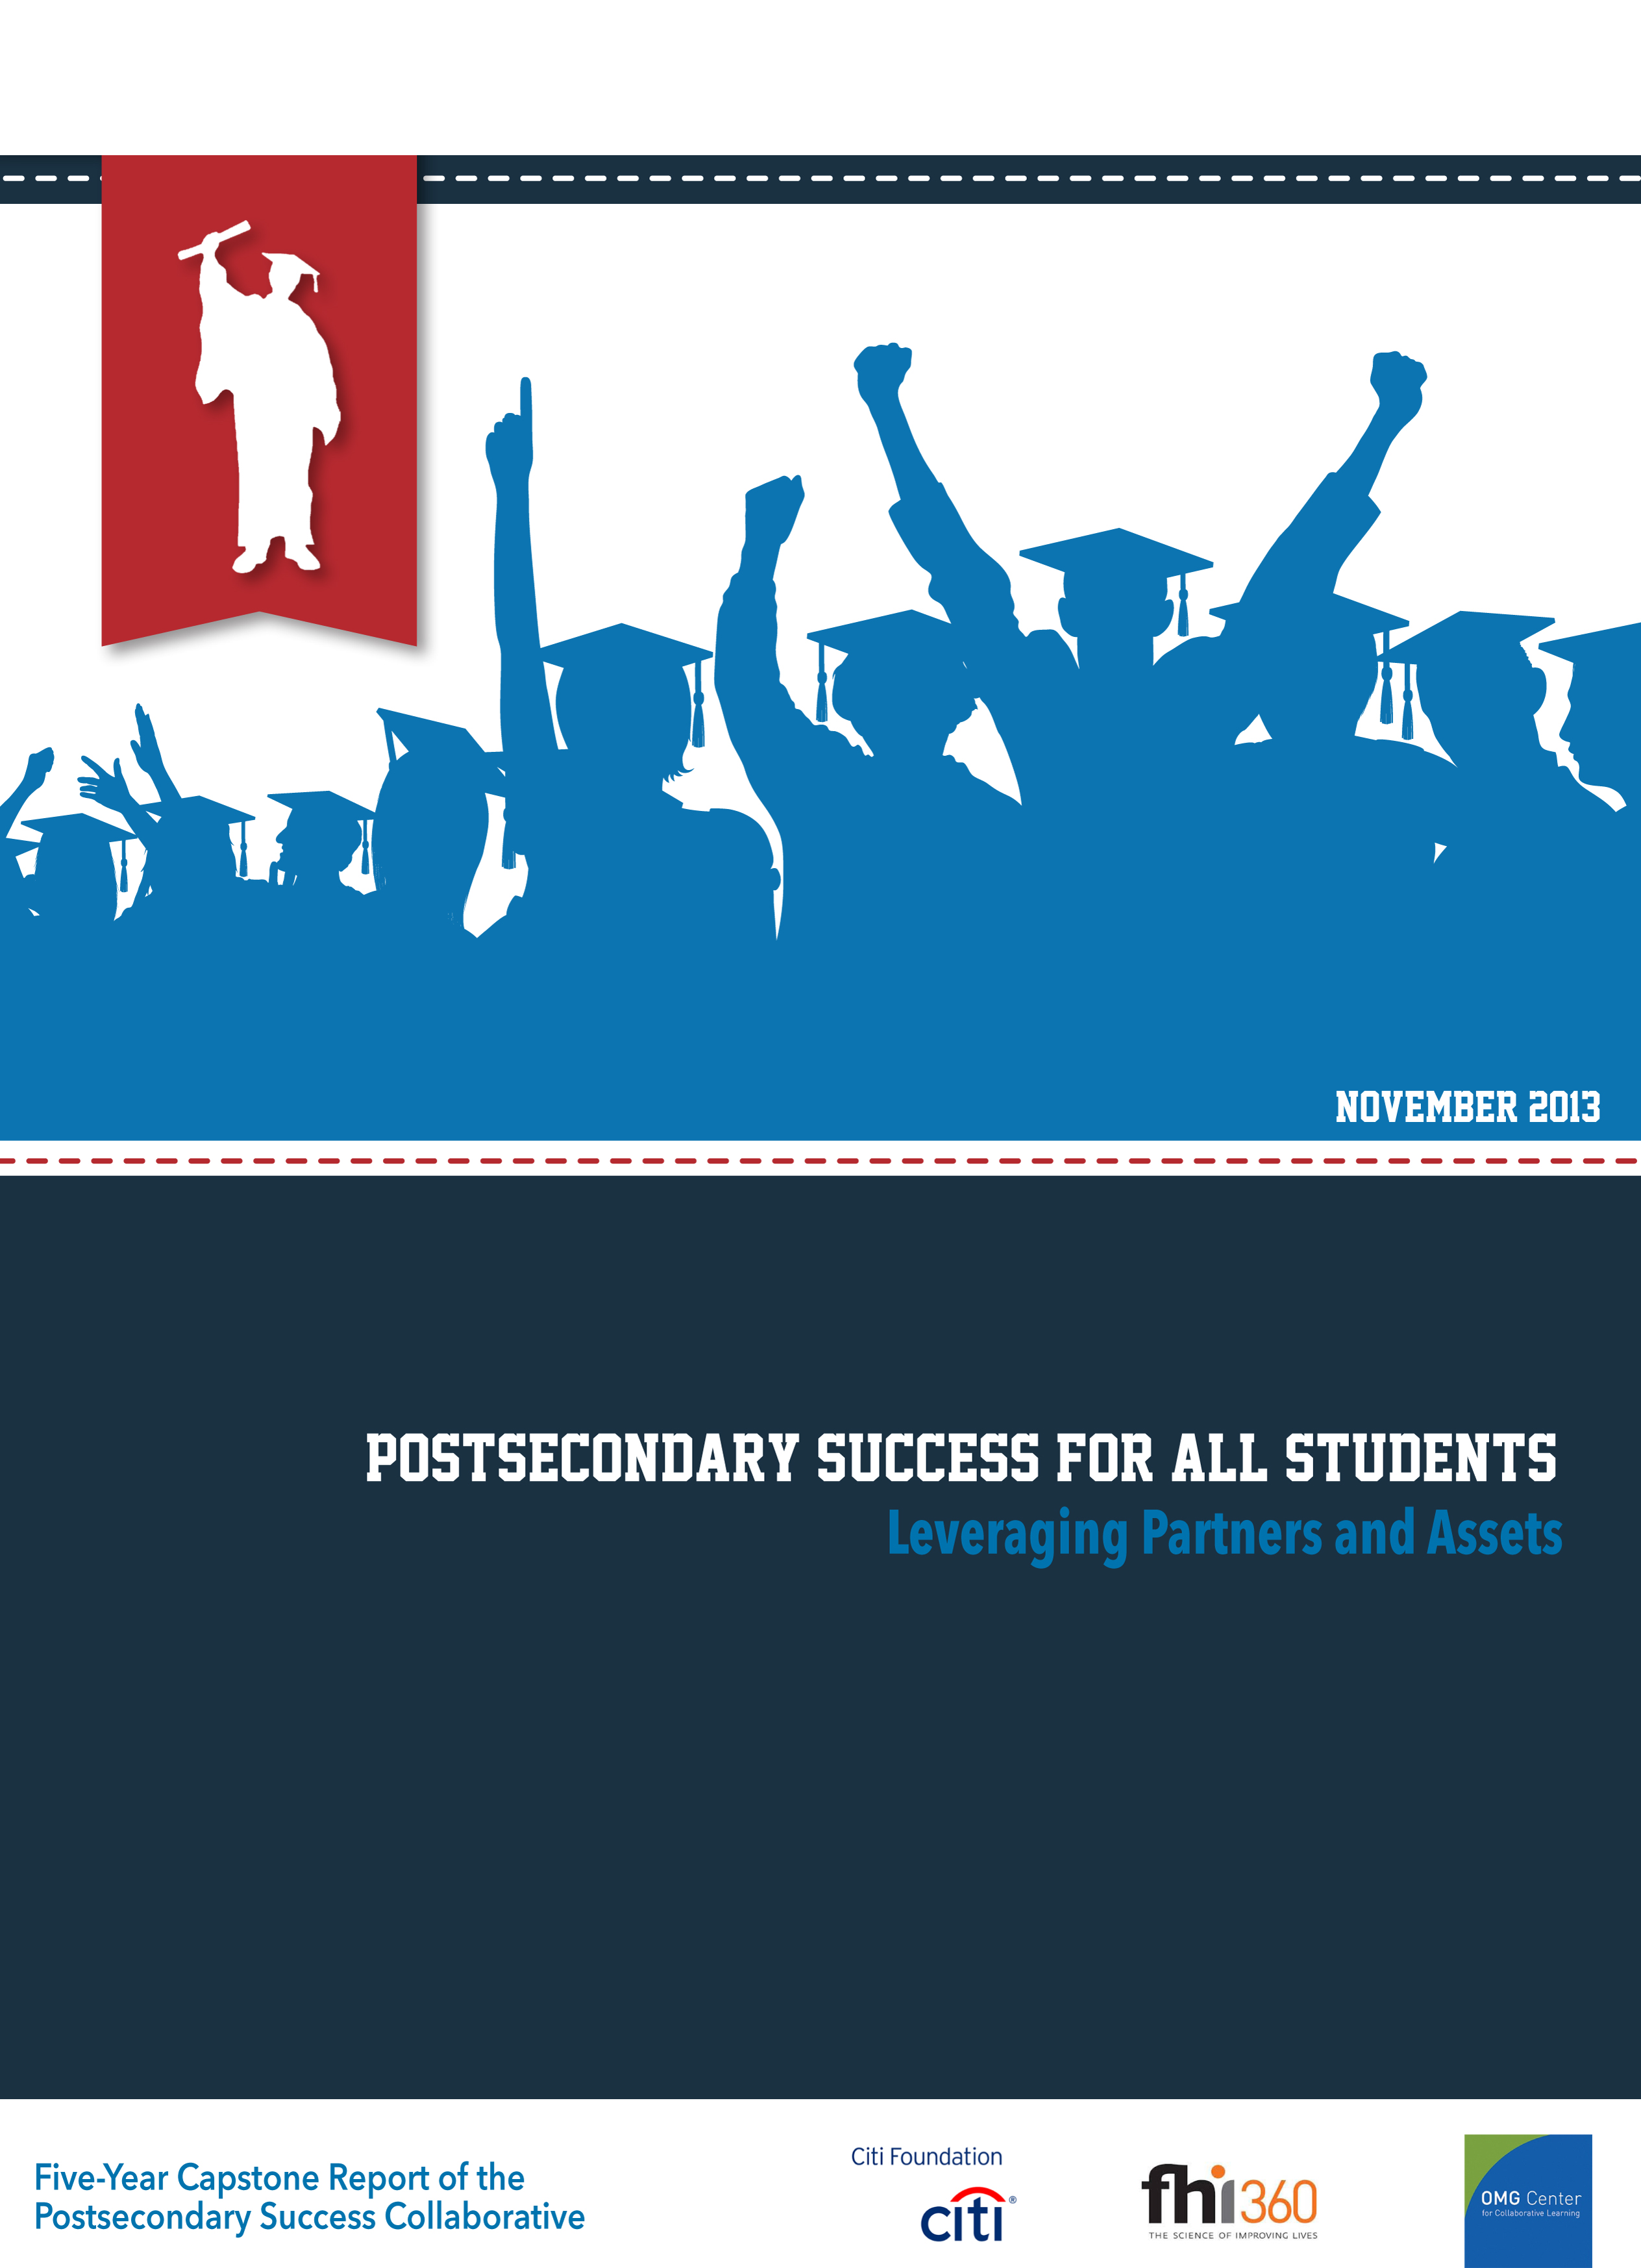 Postsecondary Success for All: Leveraging Partners and Assets